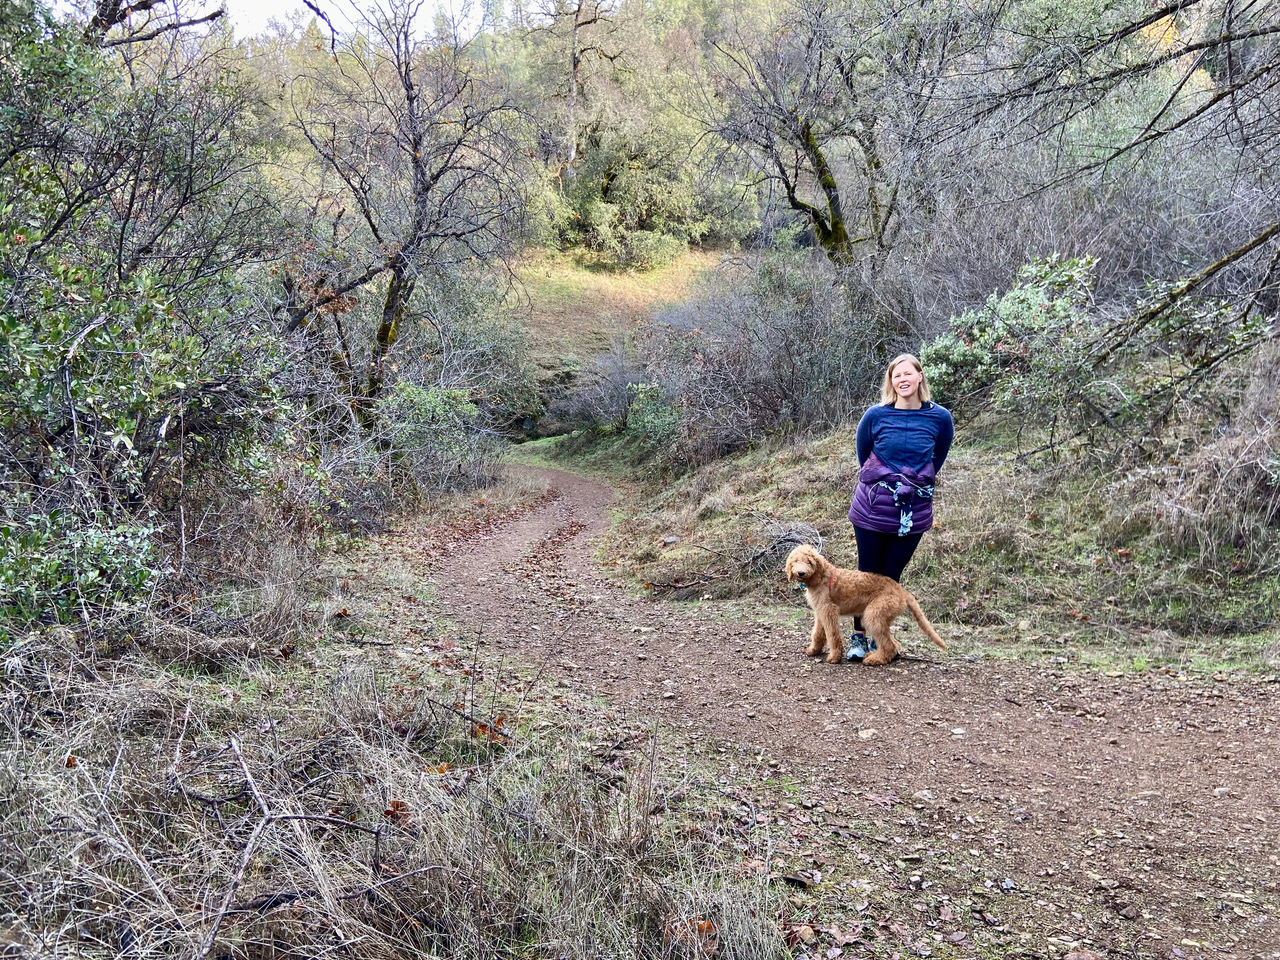 woman and dog on hiking trail